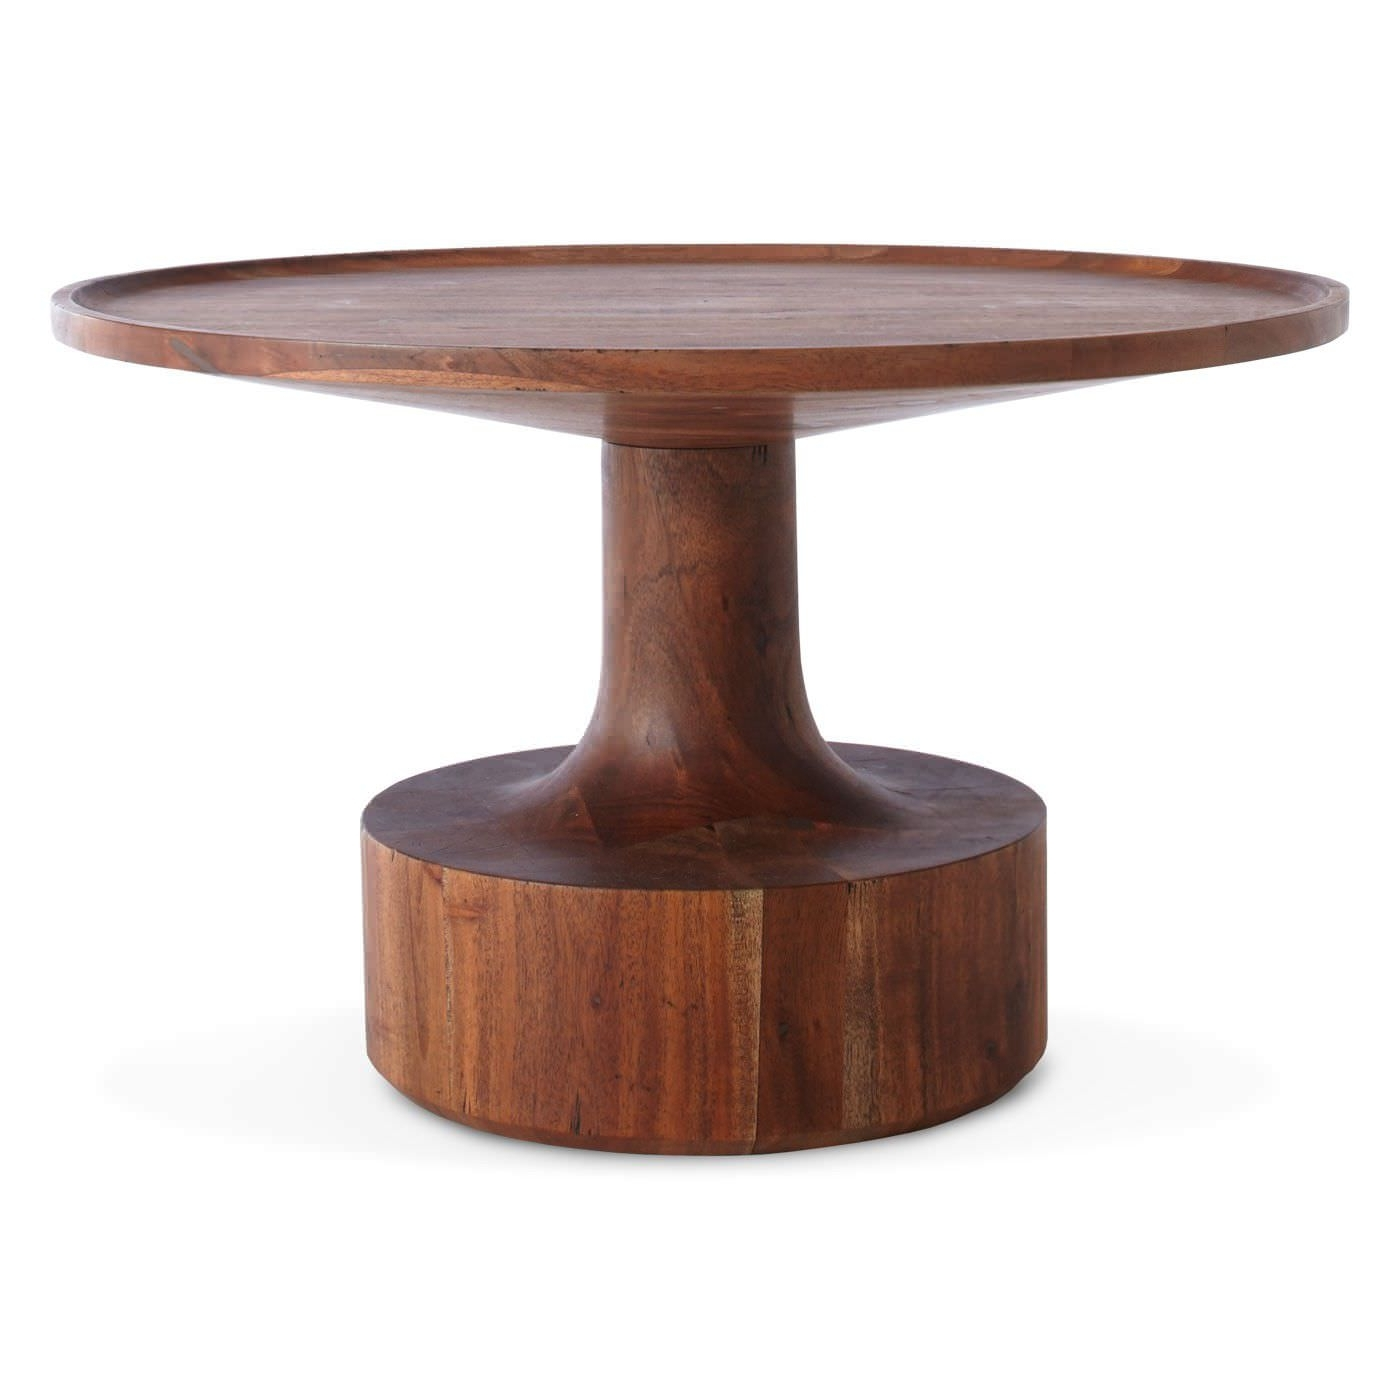 Popular Swell Round Coffee Tables Intended For Contemporary Coffee Table / Solid Wood / Round – Turn – Blu Dot (View 12 of 20)